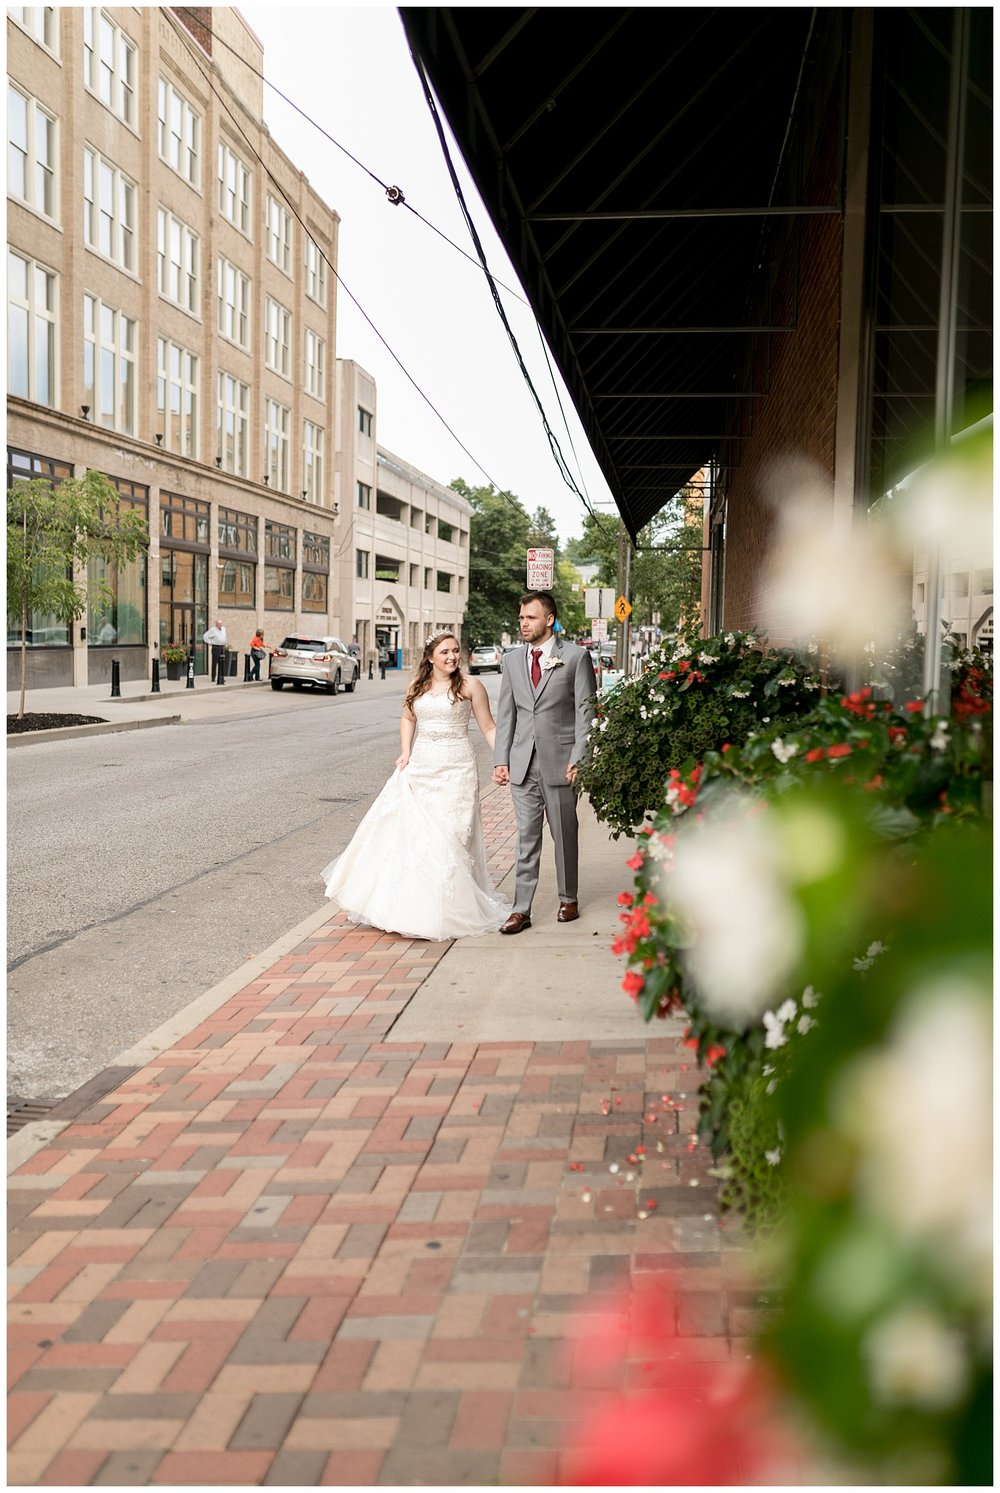 TheSmythCollective-Best-Cincinnati-Wedding-Photographer-Urban-Downtown-Covington-Wedding-31.jpg